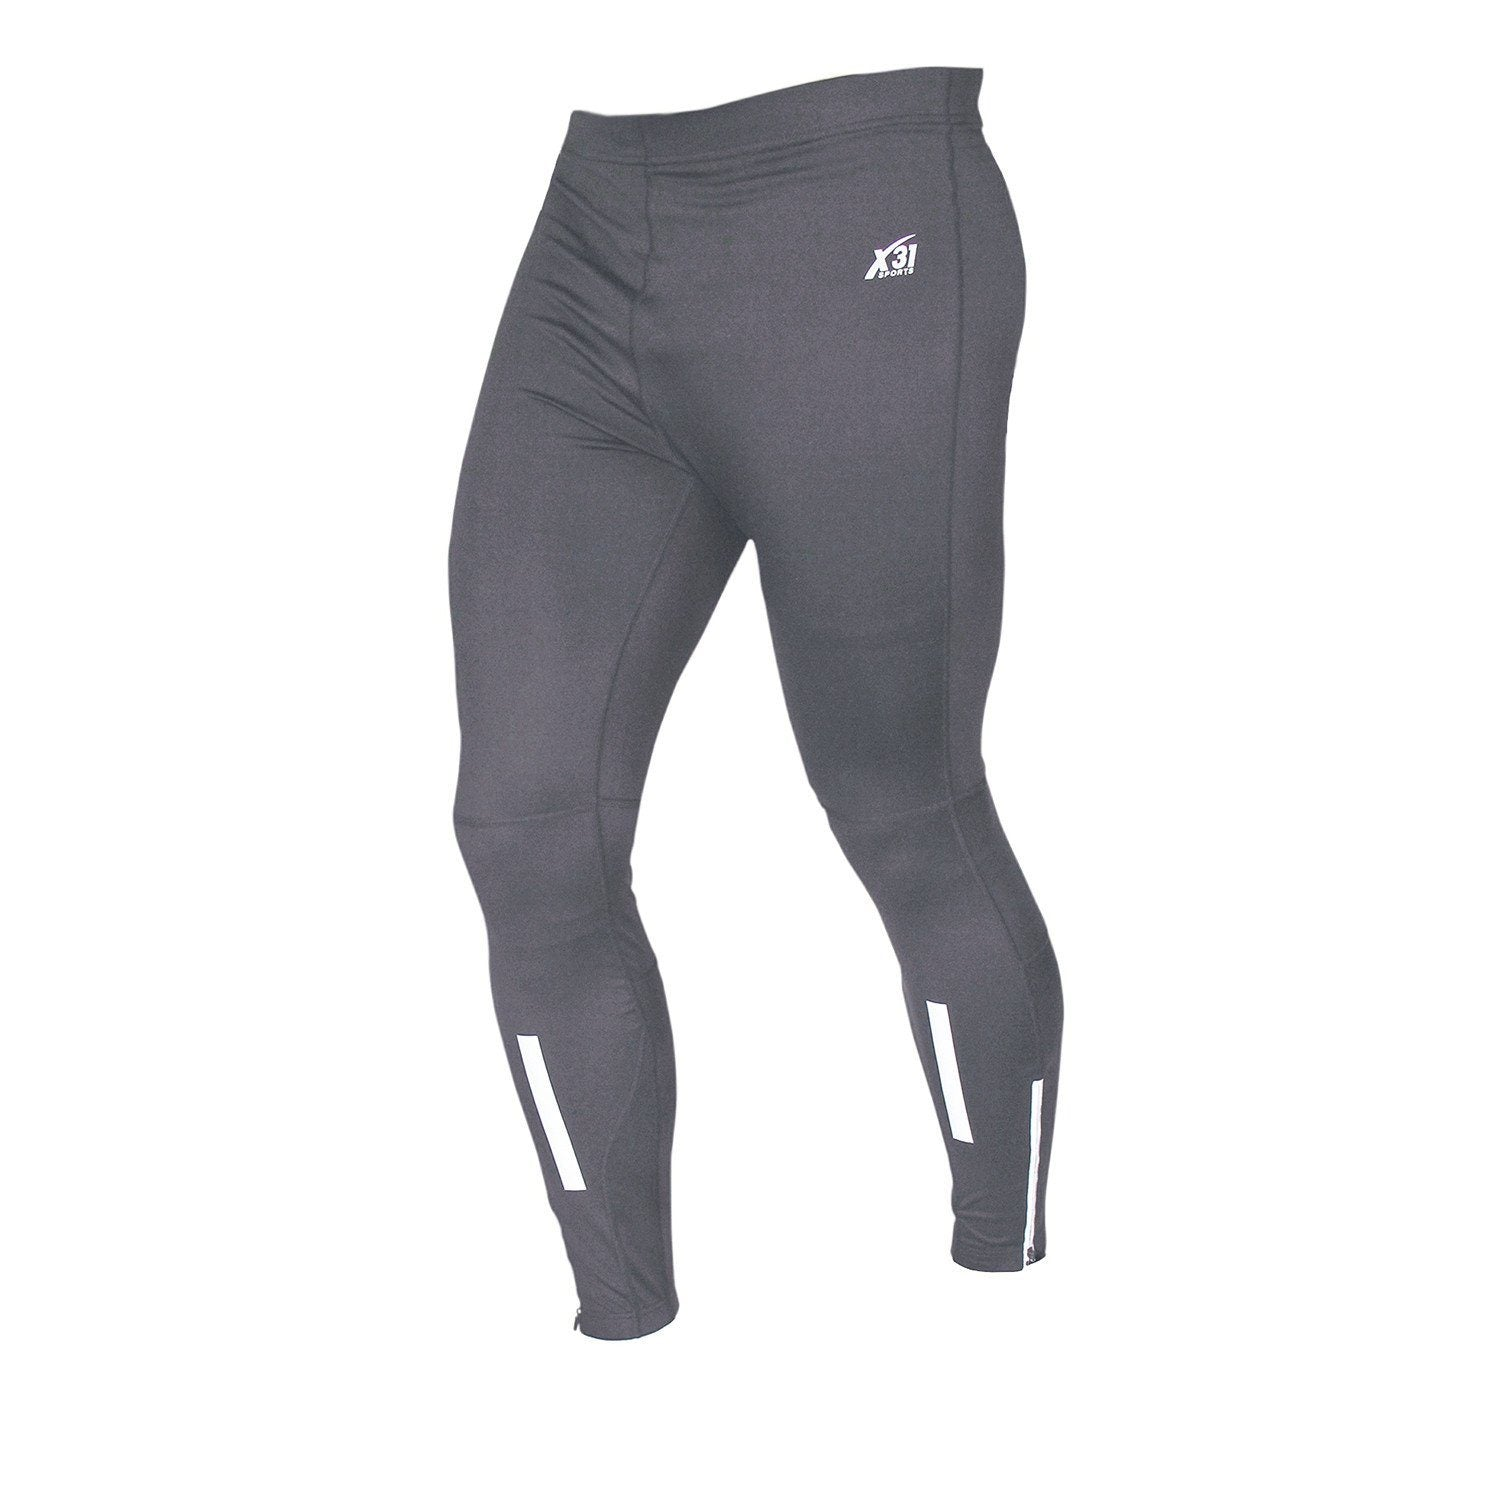 fb9e4c0d9741b Men's Running Tights, Pants, Leggings with Zipper Pockets